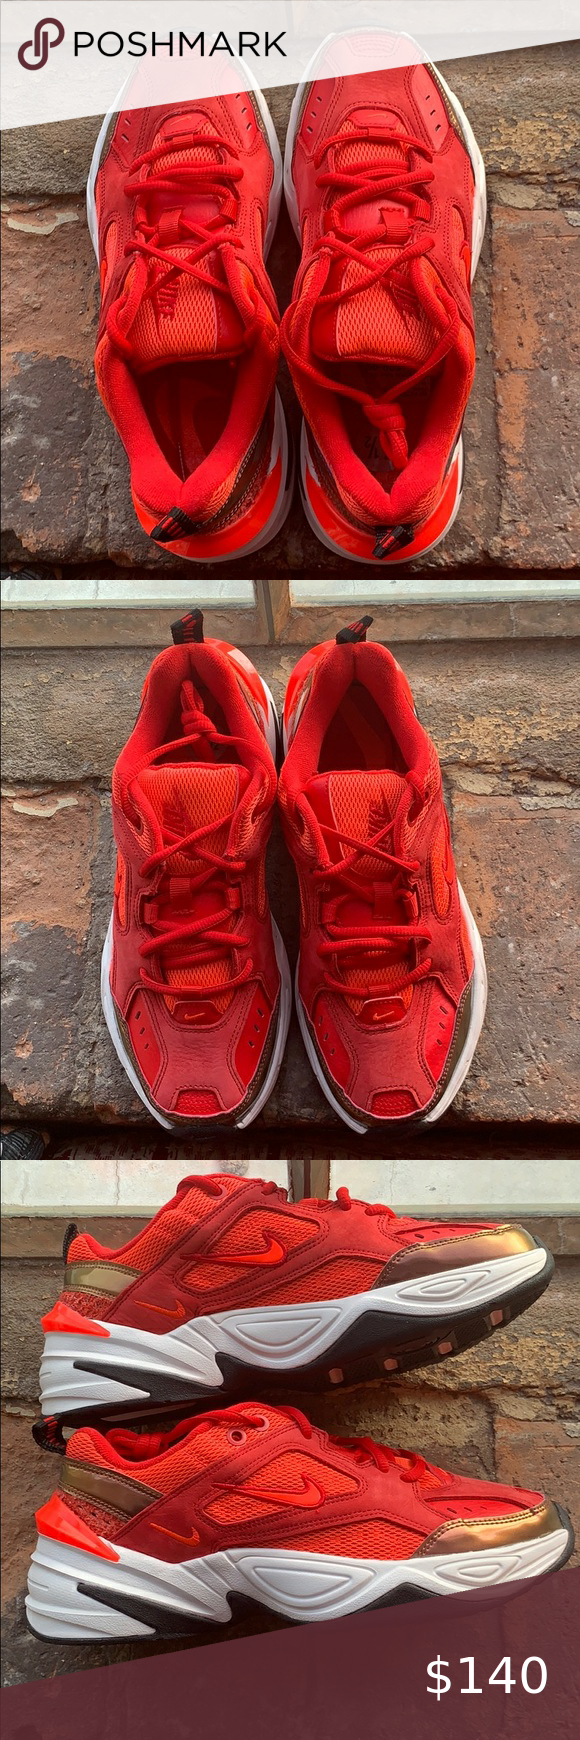 Nike M2k Tekno University Red Trainers Us7 5 In 2021 Red Trainers Nike Air Max Pink White Nike Tennis Shoes